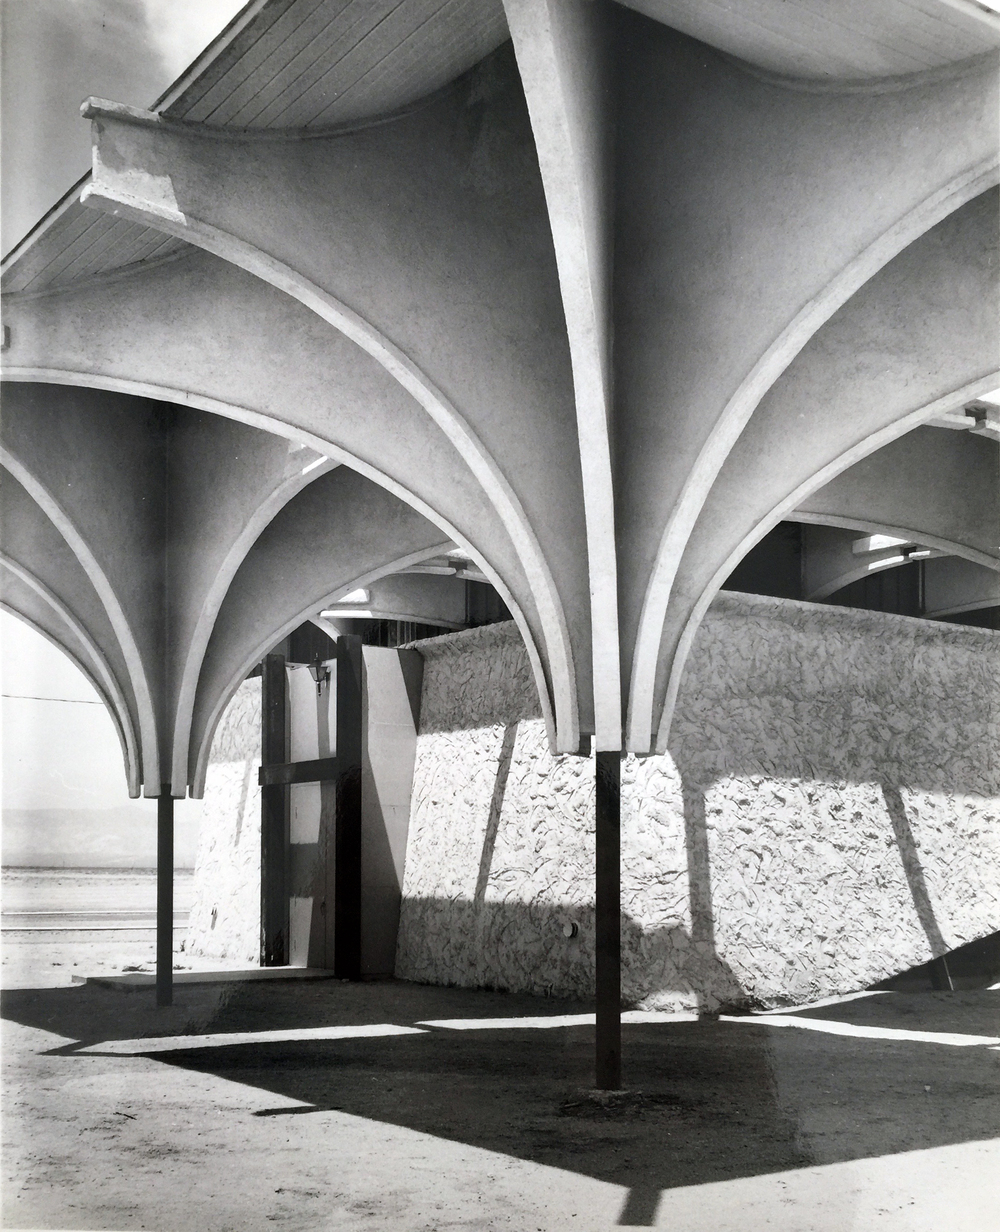 Smith and Williams, Architects and Engineers. Congregational Church, California City. 1962. Architecture and Design Collection, University Art Museum, UCSB.